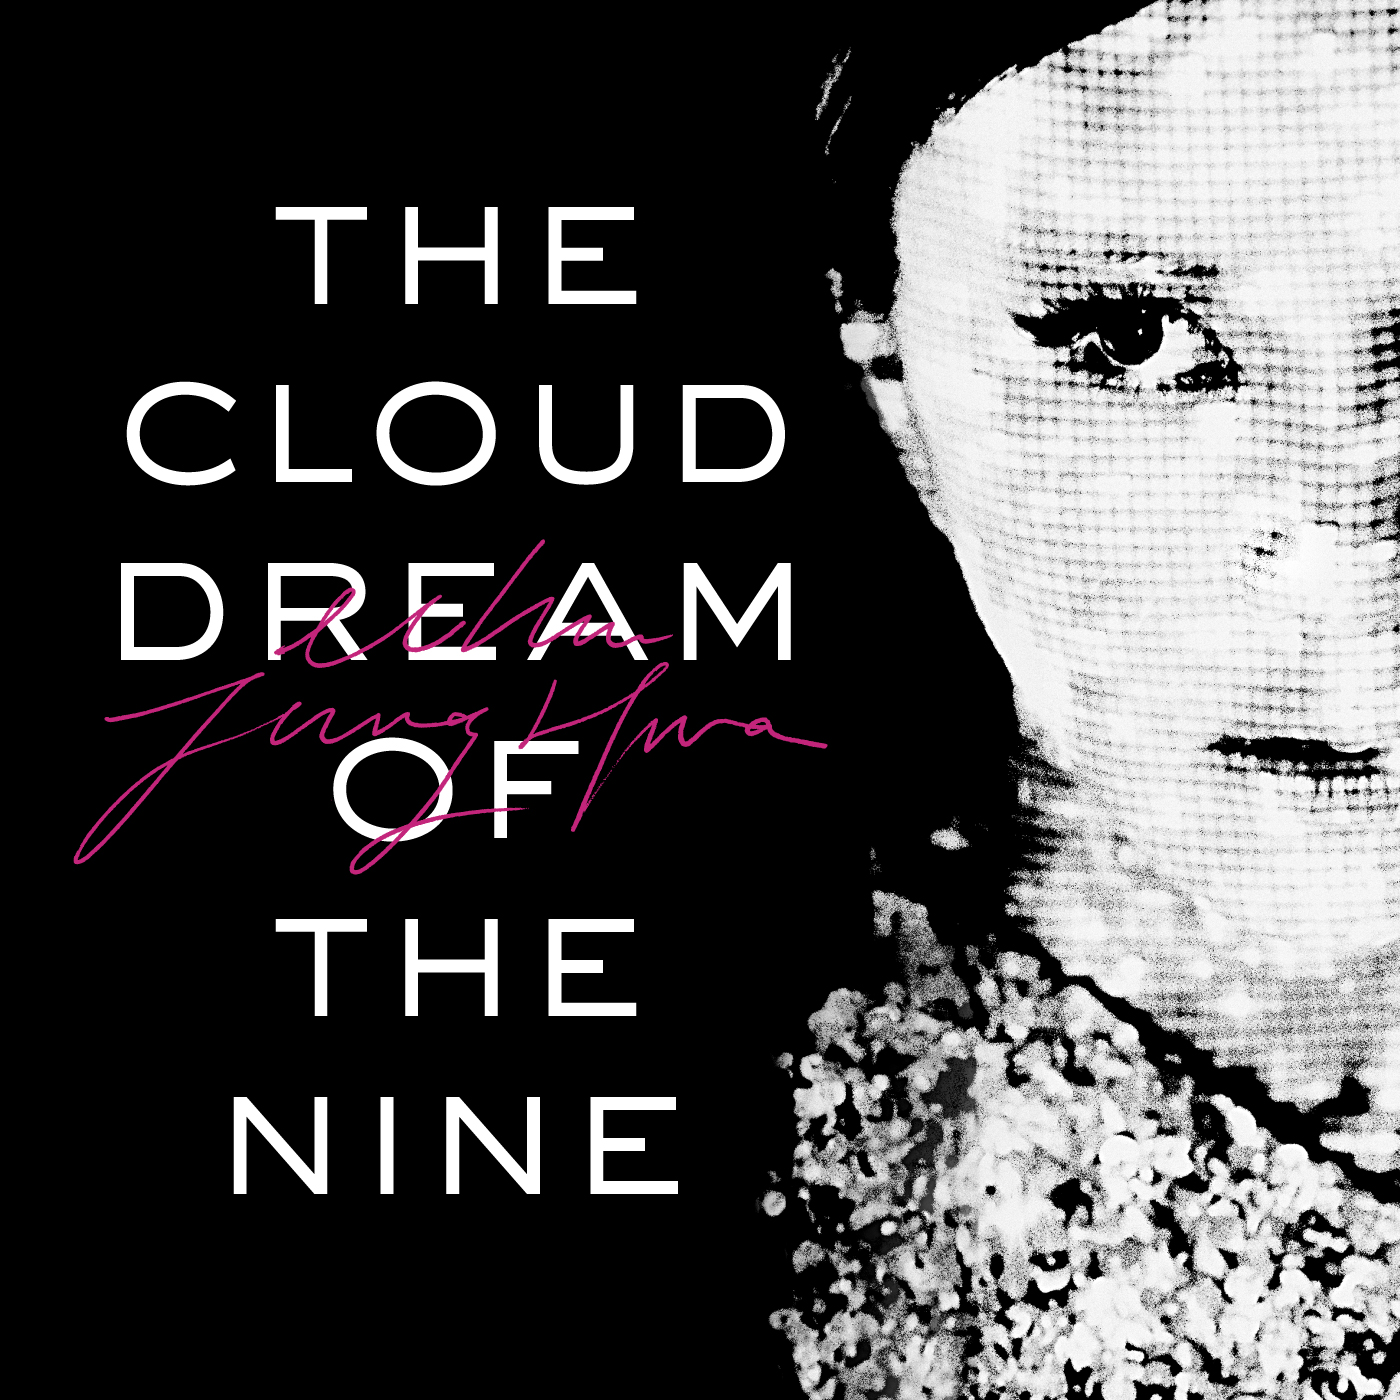 엄정화 [The Cloud Dream Of The Nine]